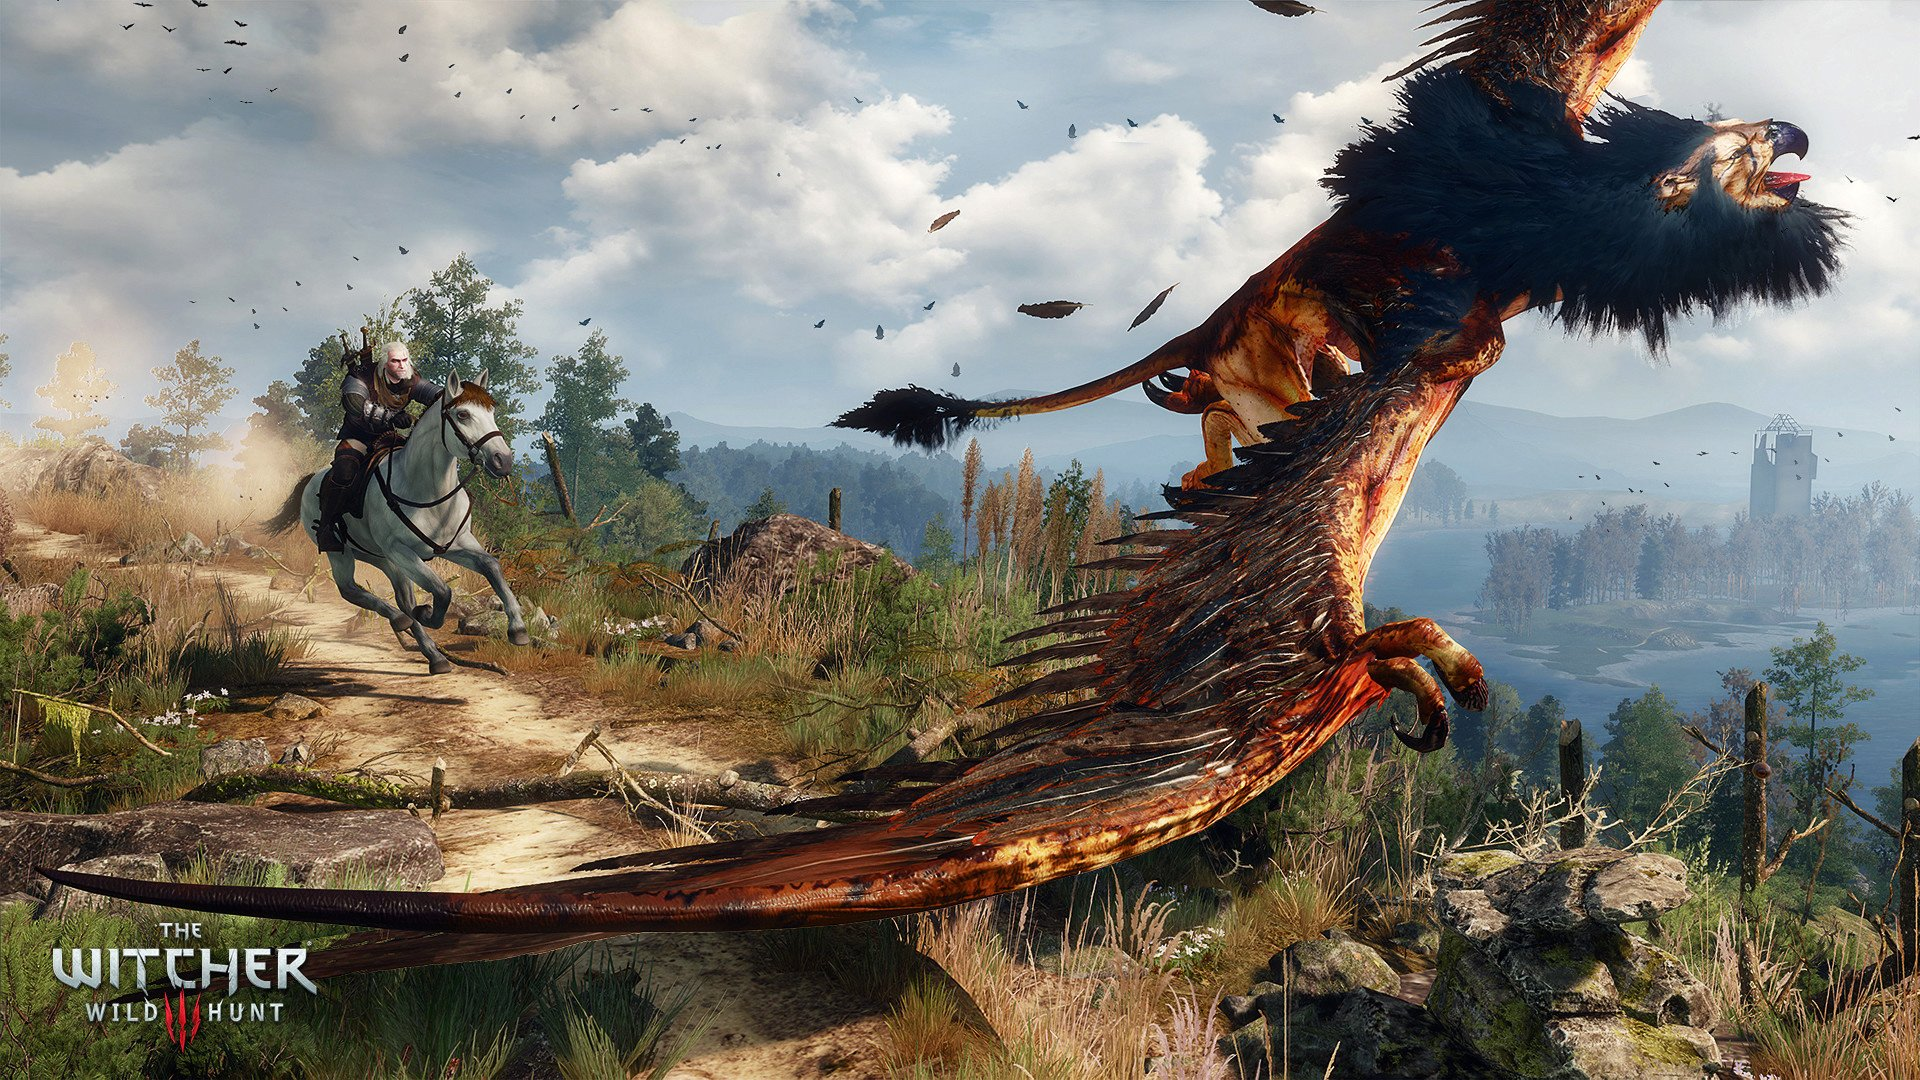 Today's Xbox One X update for The Witcher 3 adds a 60 FPS mode screenshot